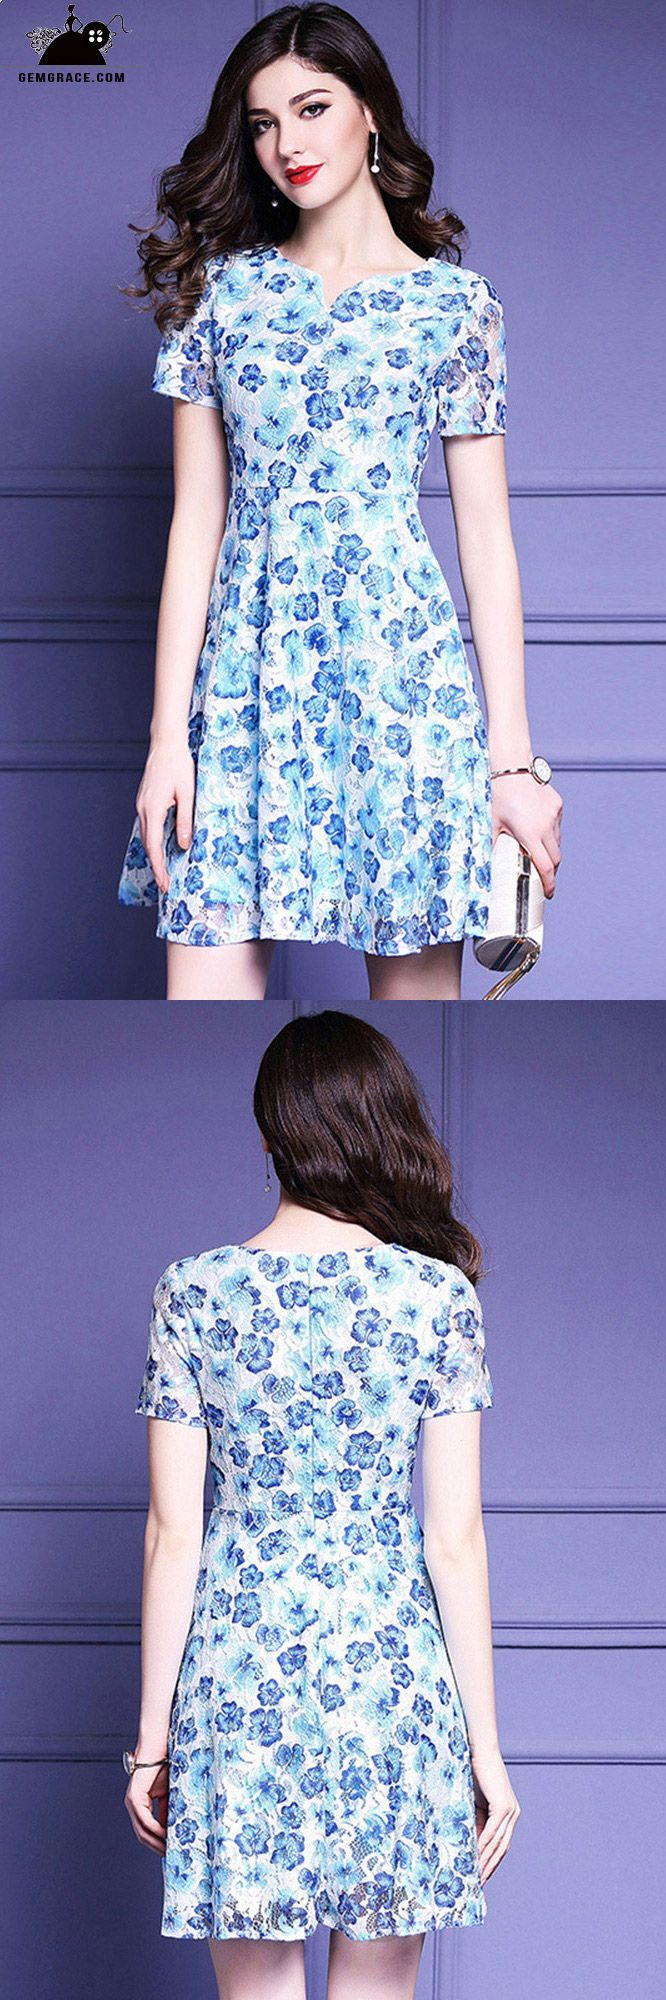 Blue modest floral casual wedding guest dress with sleeves wedding